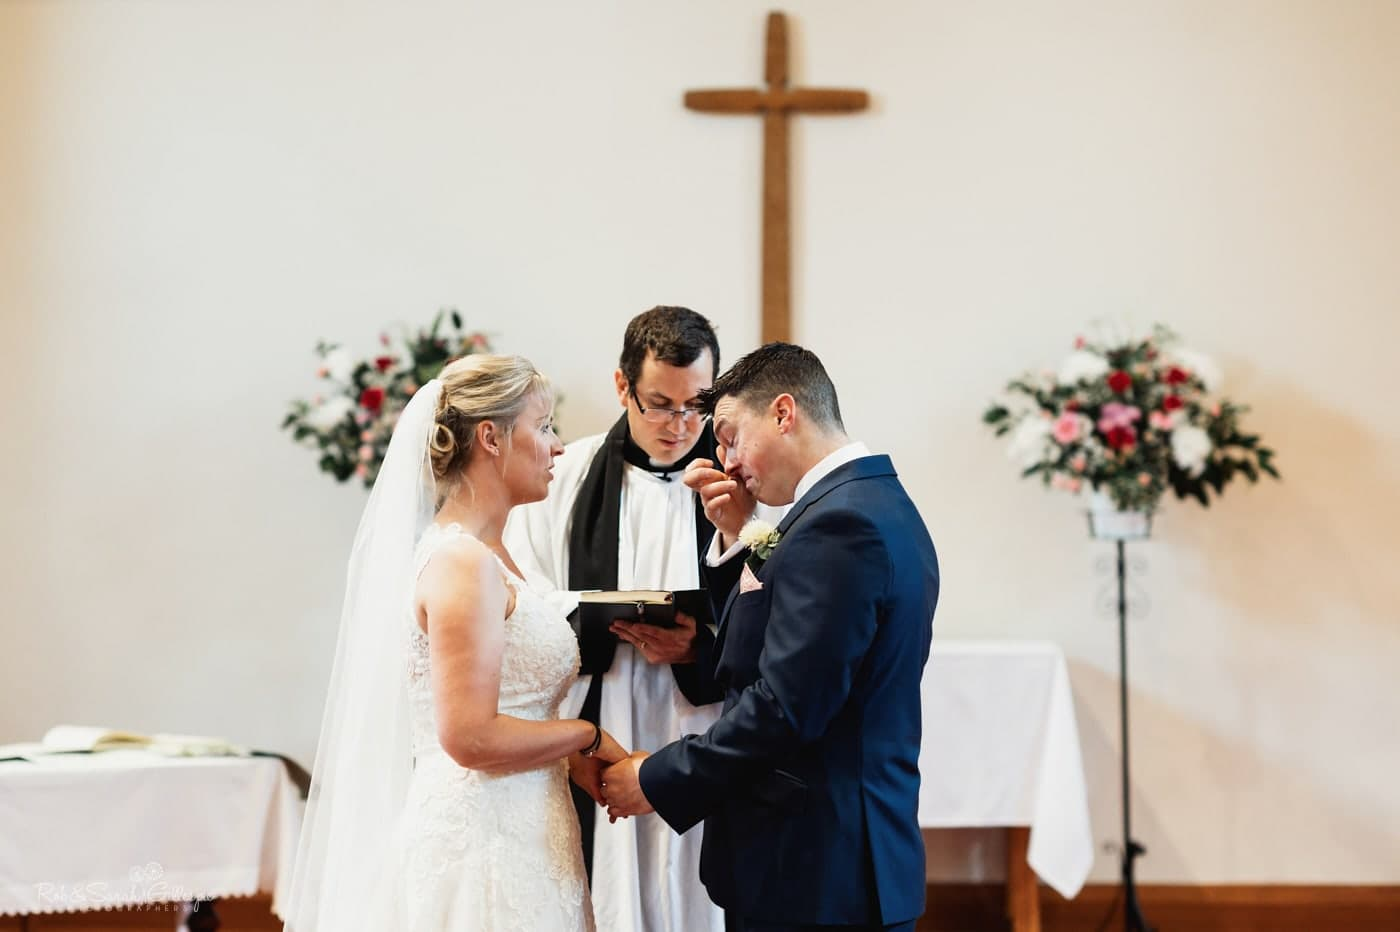 Groom emotional during wedding vows